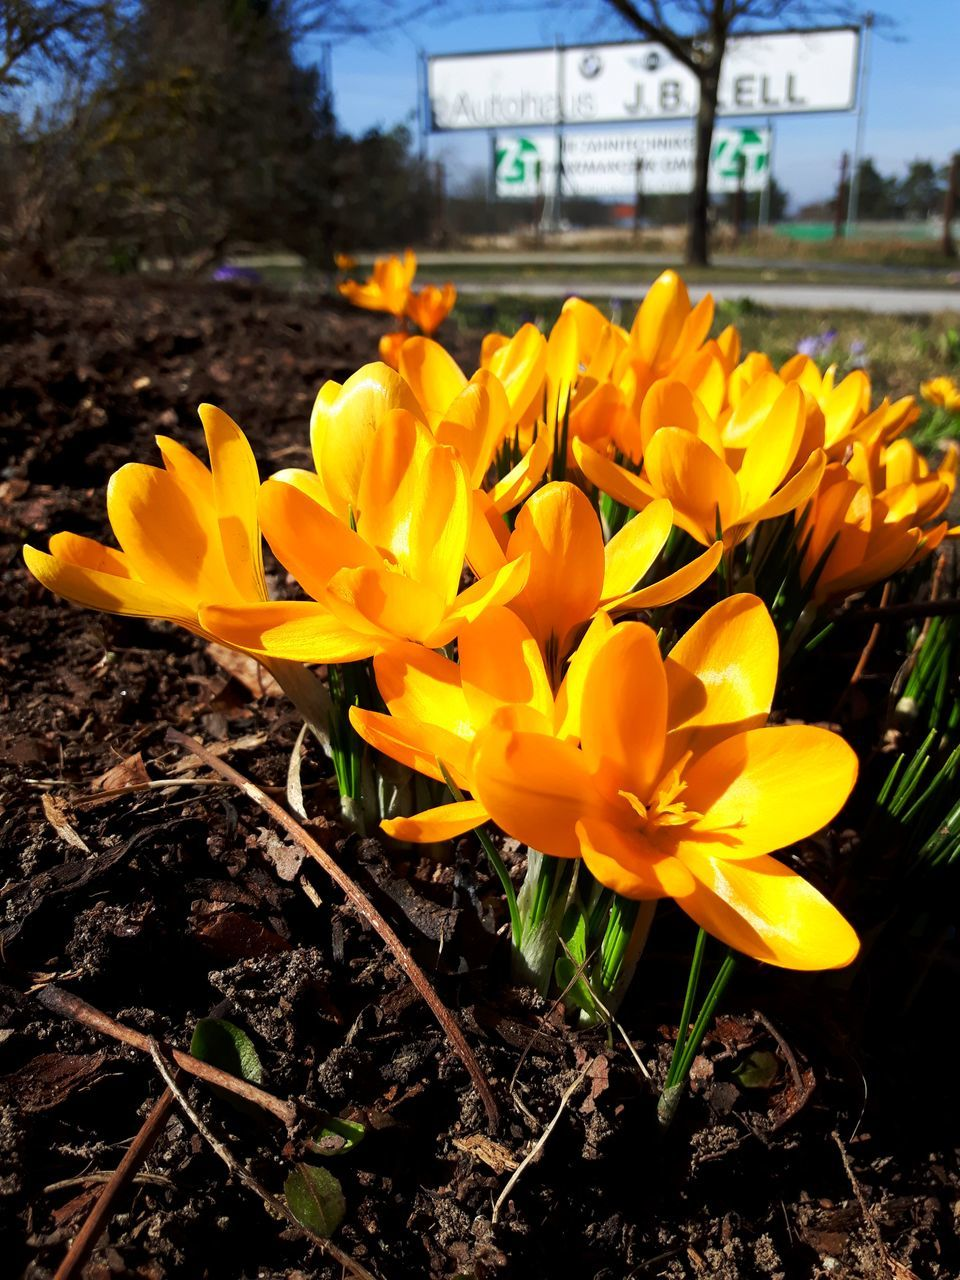 flower, yellow, petal, nature, fragility, beauty in nature, growth, freshness, plant, outdoors, no people, flower head, blooming, day, close-up, crocus